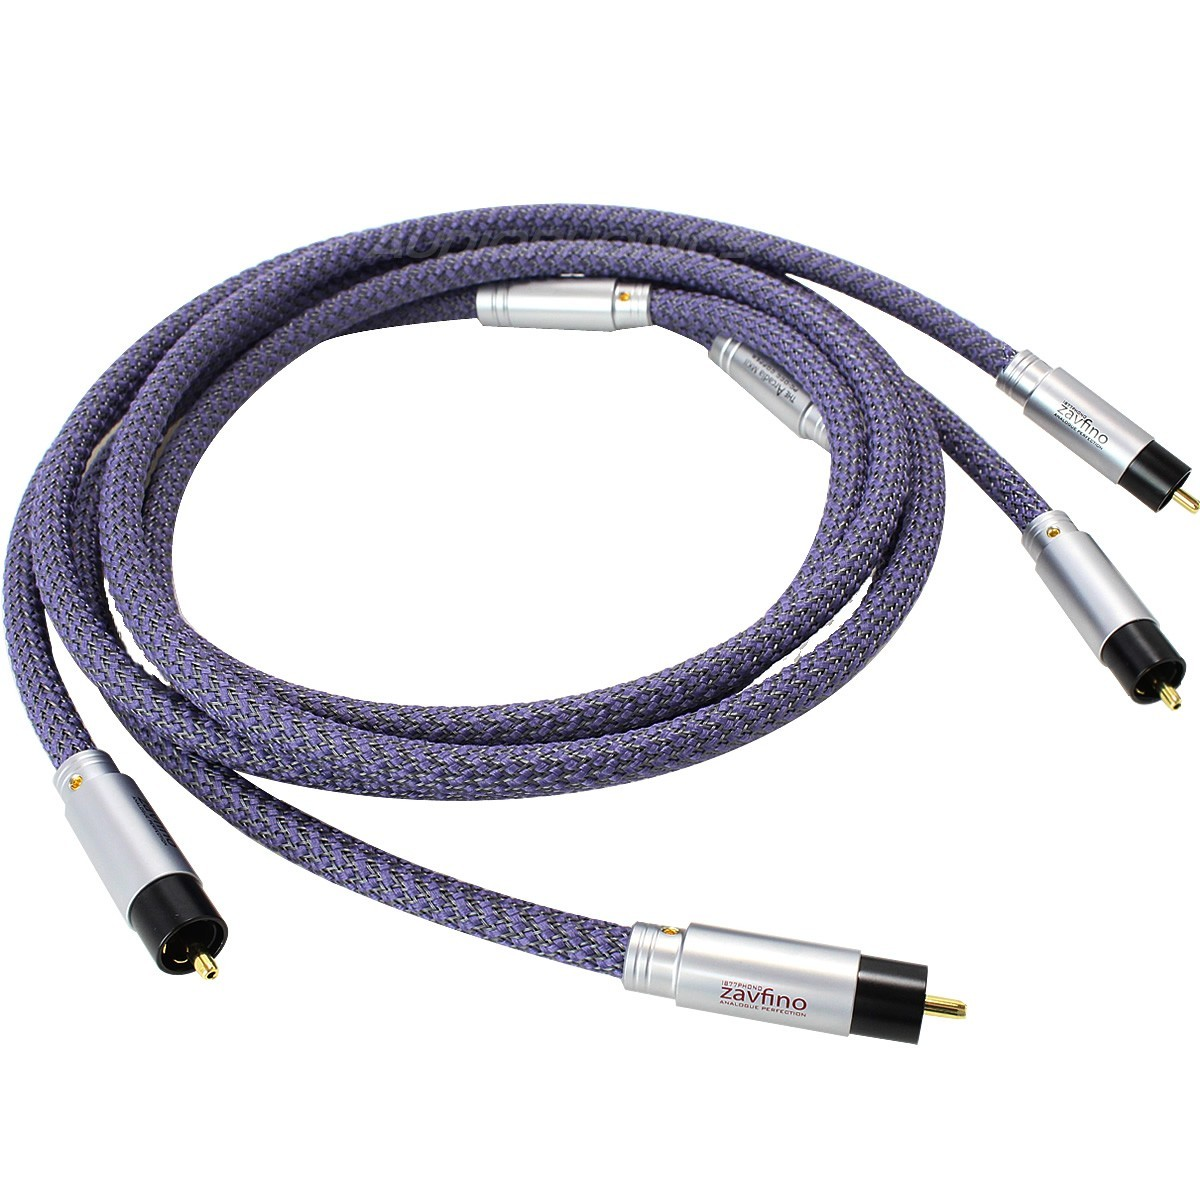 1877PHONO ARCADIA MKI Interconnect Cable PC-OCC RCA-RCA 1.5m